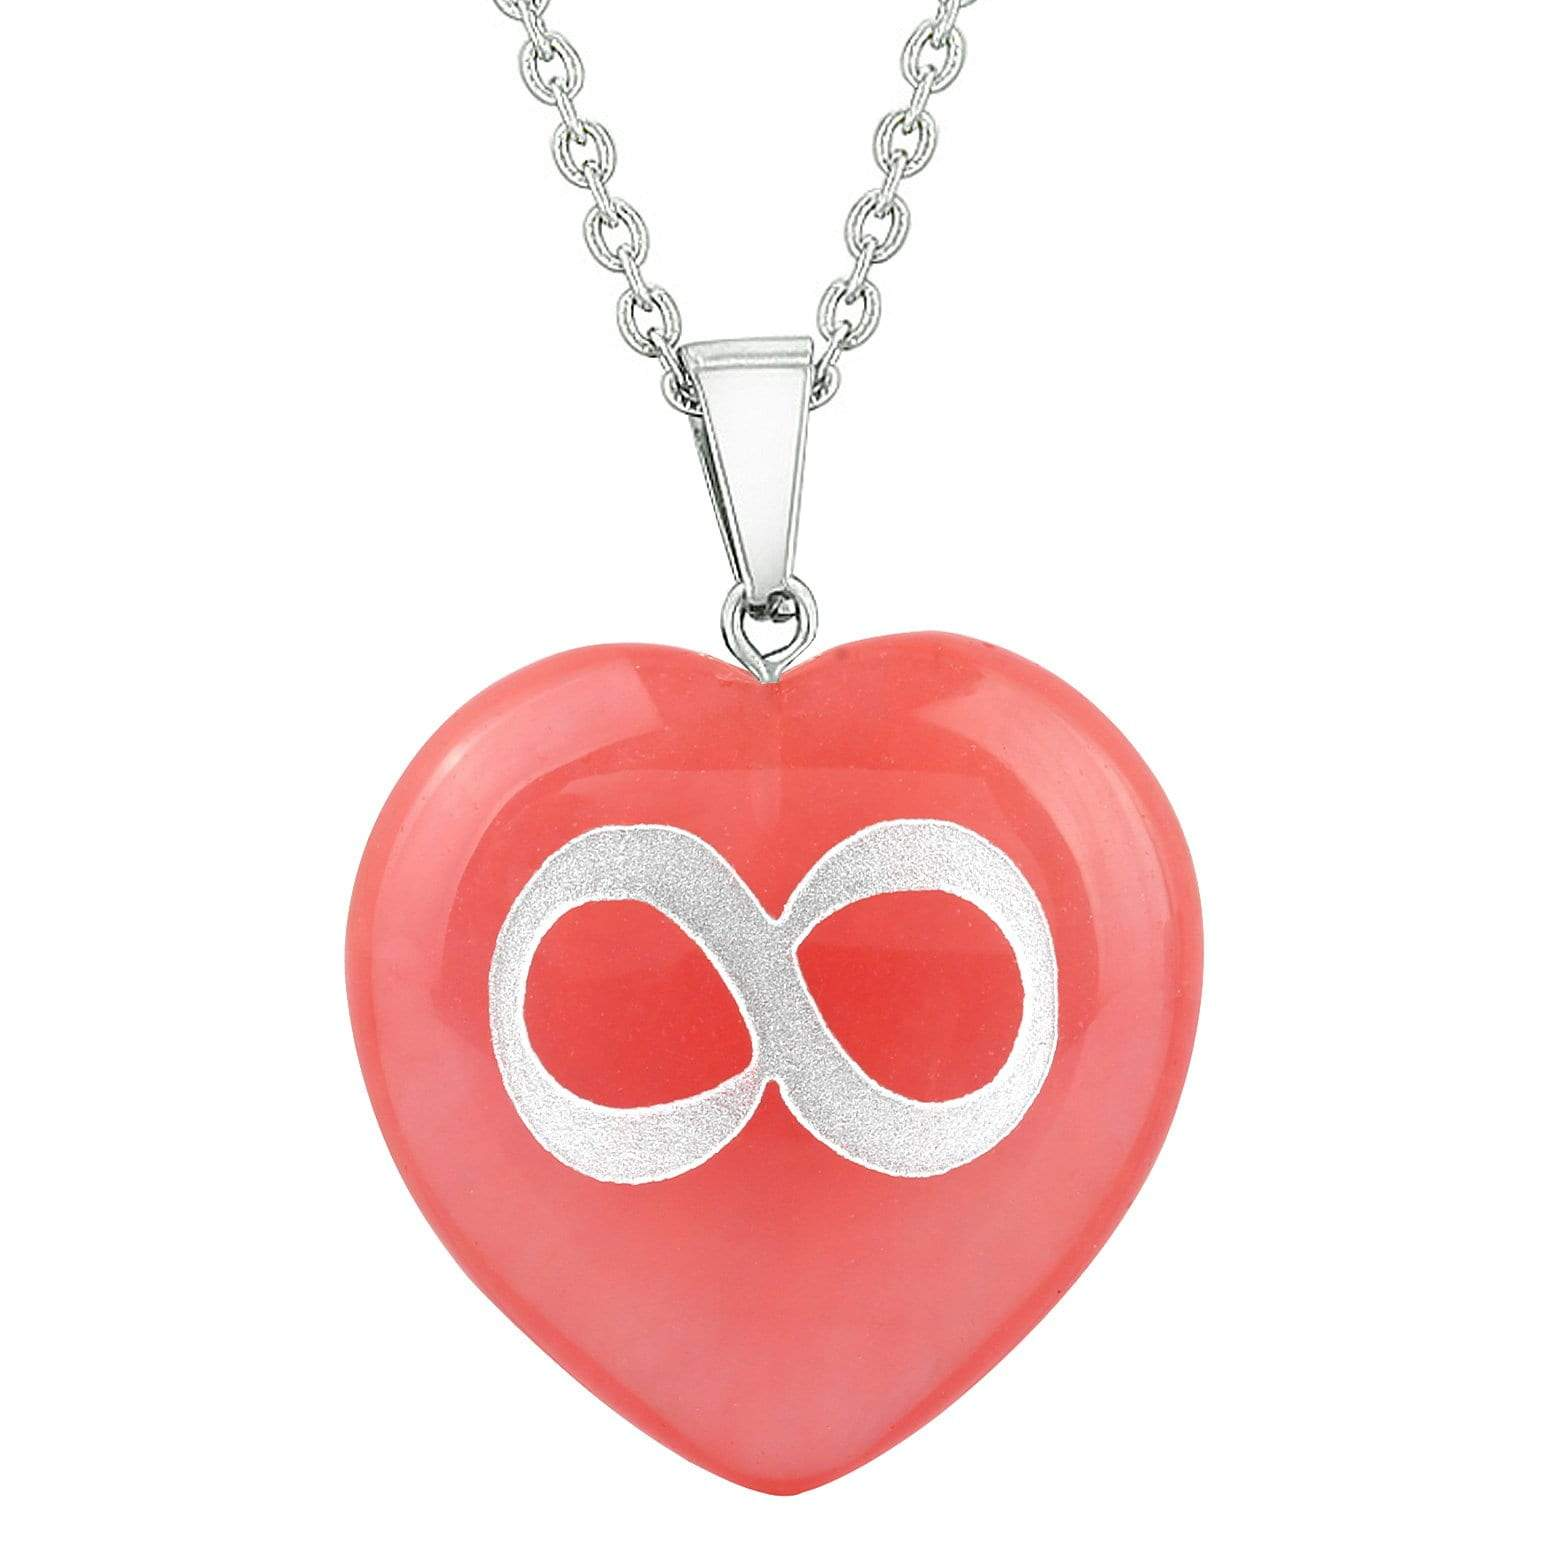 Amulet Infinity Magical Unity Powers Energy Cherry Simulated Quartz Puffy Heart Pendant Necklace